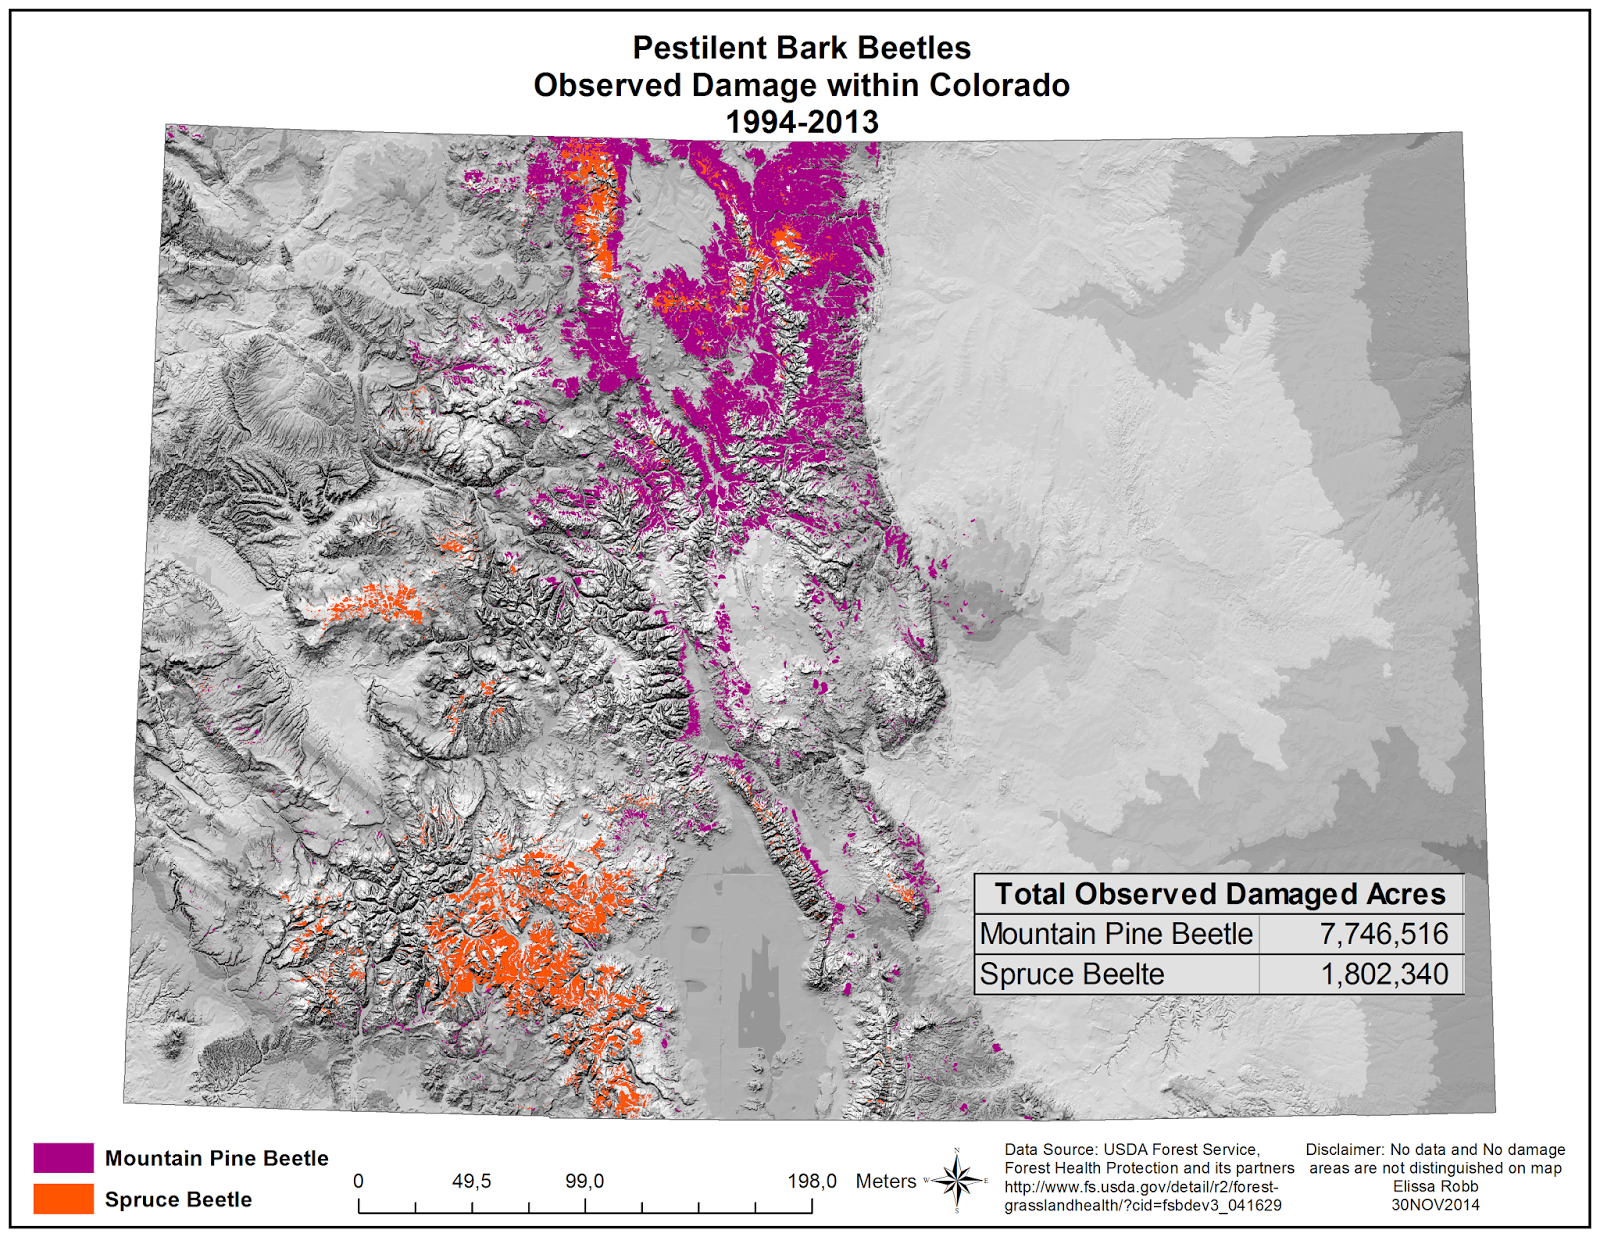 this map shows the destruction from mountain pine beetles in purple and spruce beetles in orange within the state of colorado from 1994 2013